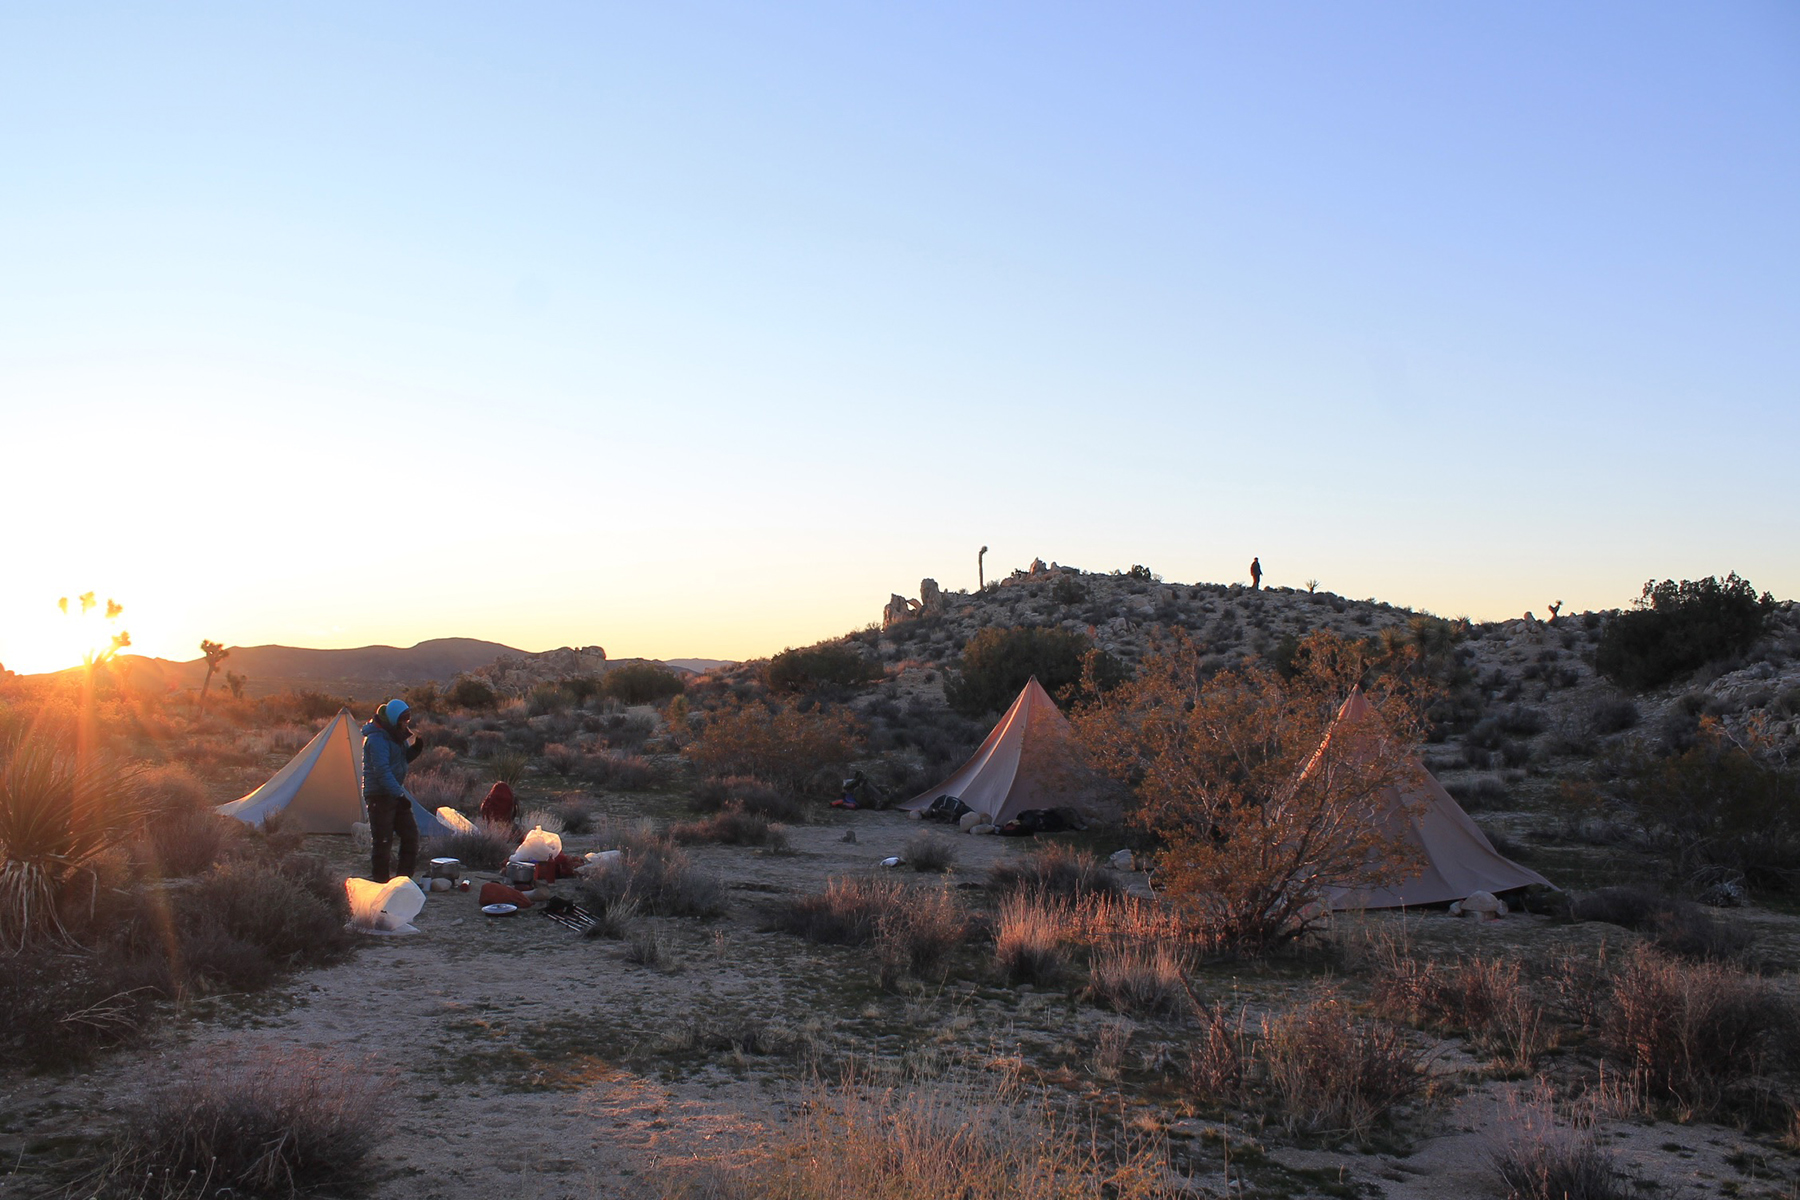 Outward Bound instructor passing by campsite during sunset.